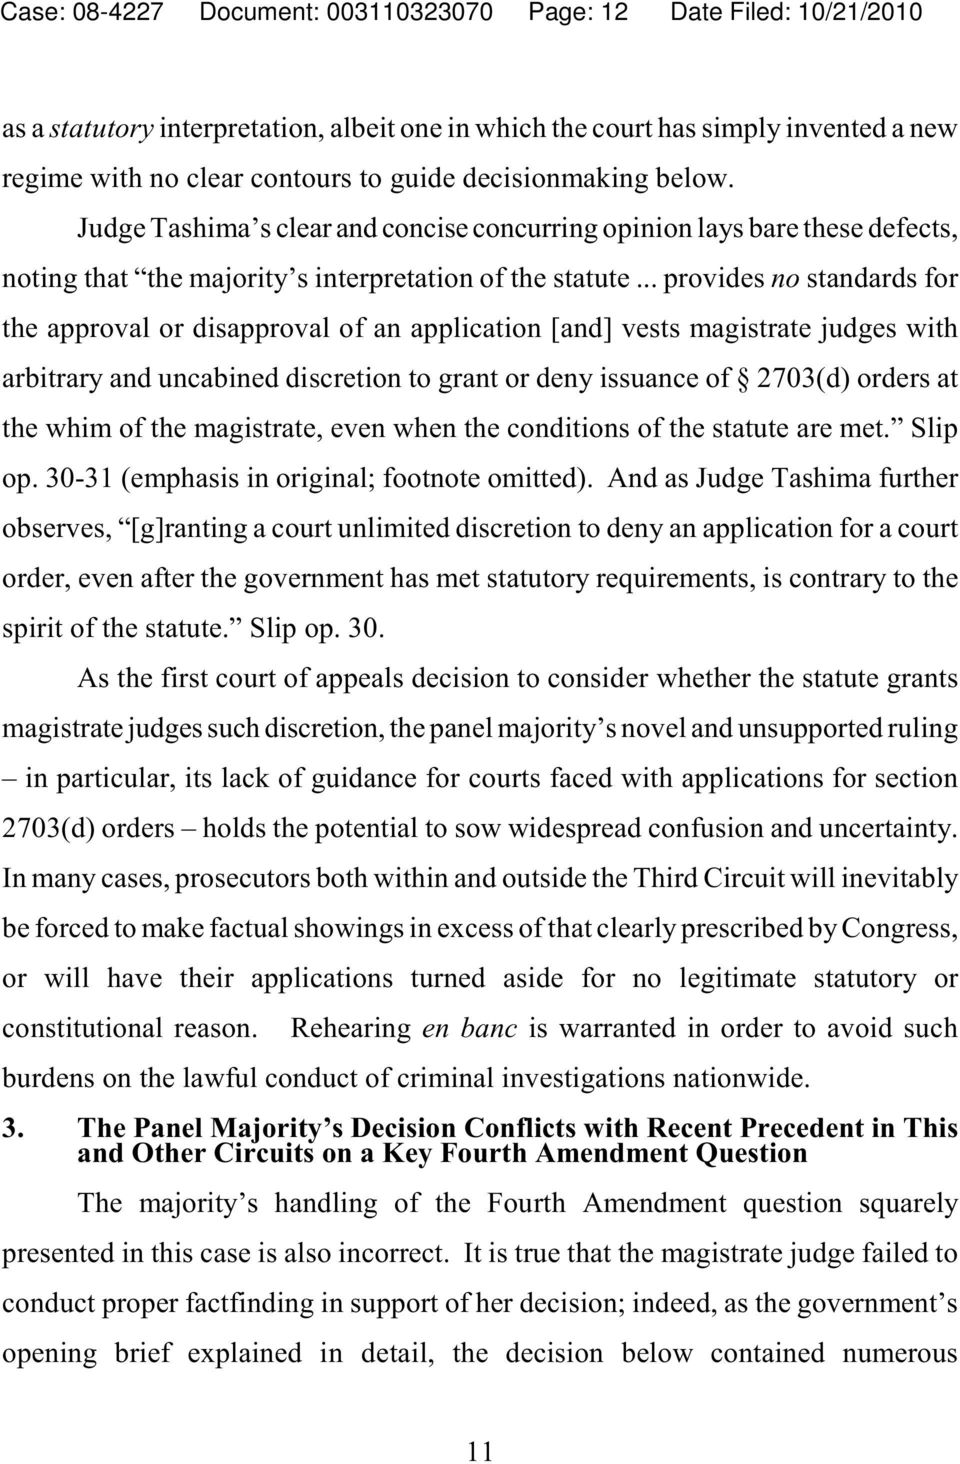 .. provides no standards for the approval or disapproval of an application [and] vests magistrate judges with arbitrary and uncabined discretion to grant or deny issuance of 2703(d) orders at the